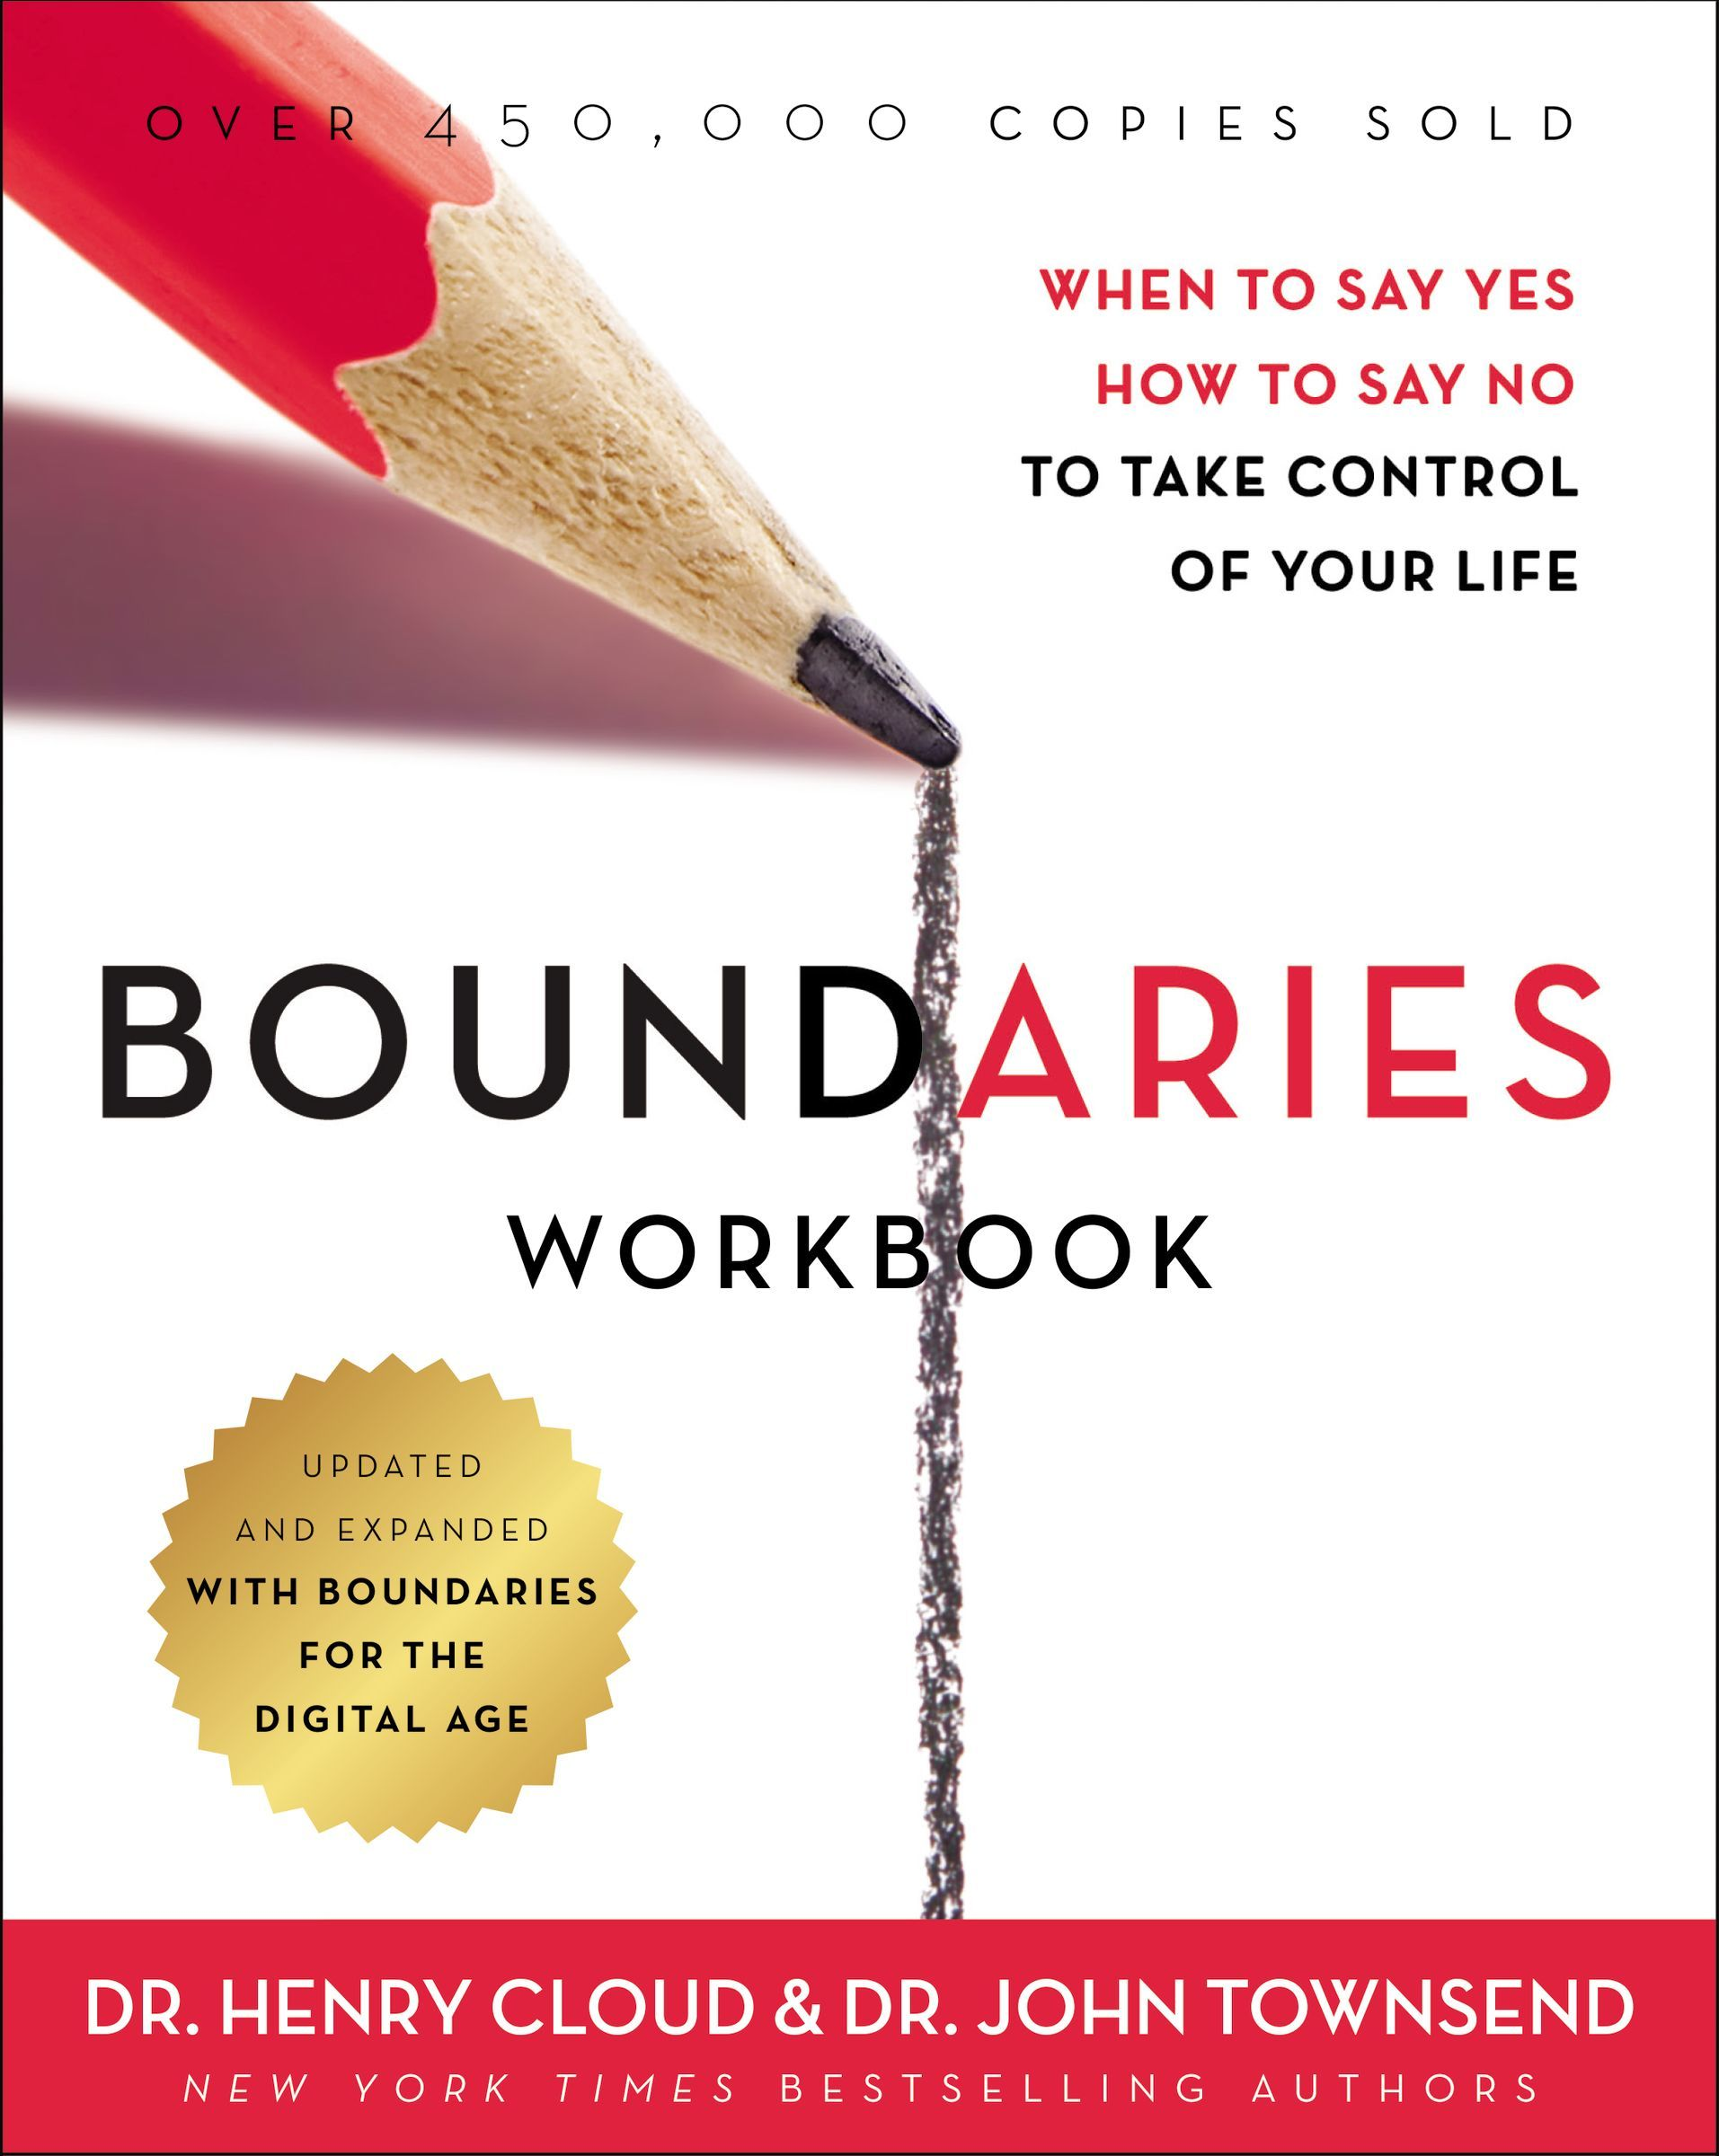 Boundaries Workbook: When to Say Yes, How to Say No to Take Control of Your Life